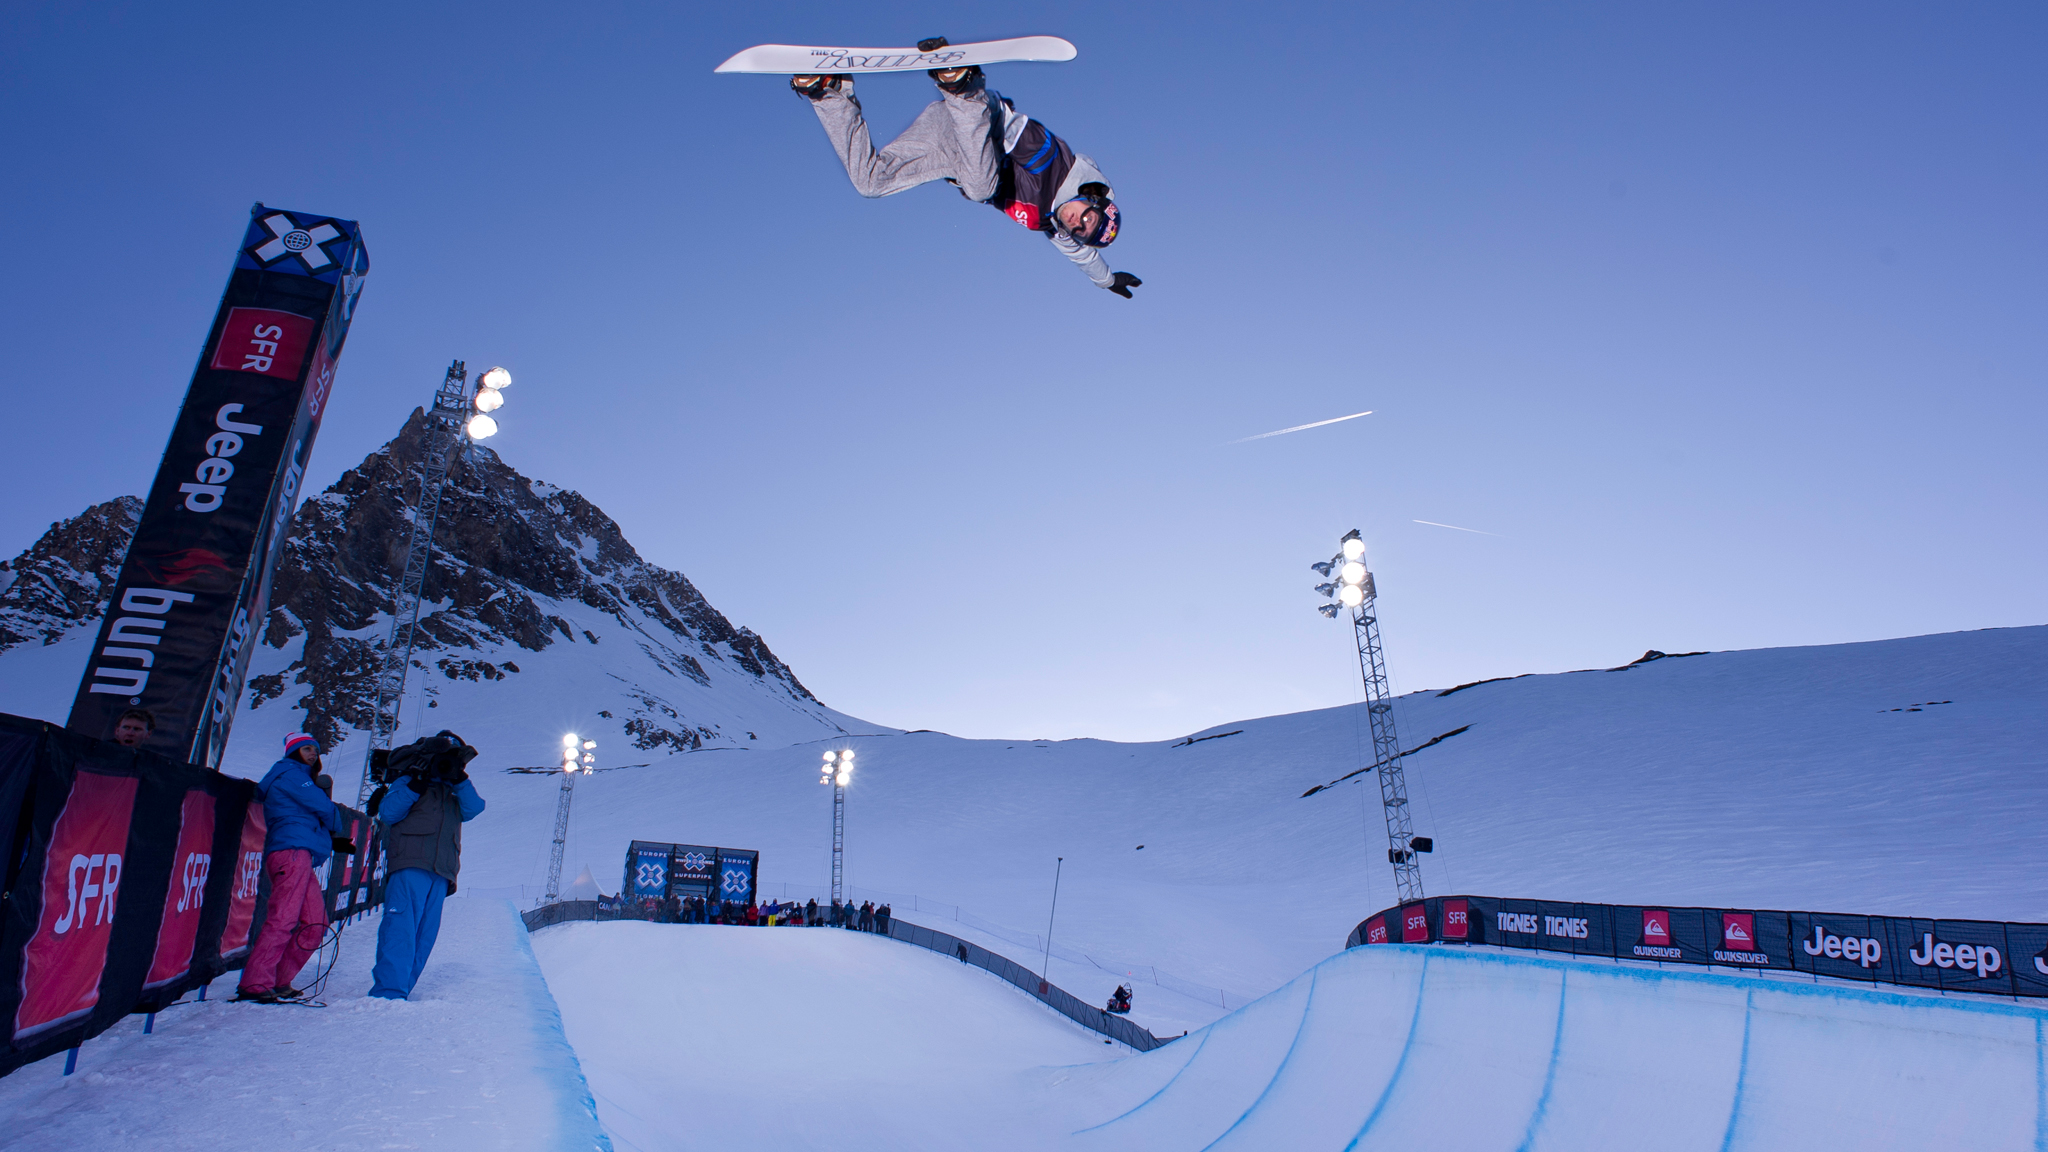 Iouri Podladtchikov didn't compete in the Men's Snowboard SuperPipe finals in Aspen due to a stomach flu. He will be a favorite this week in Tignes.